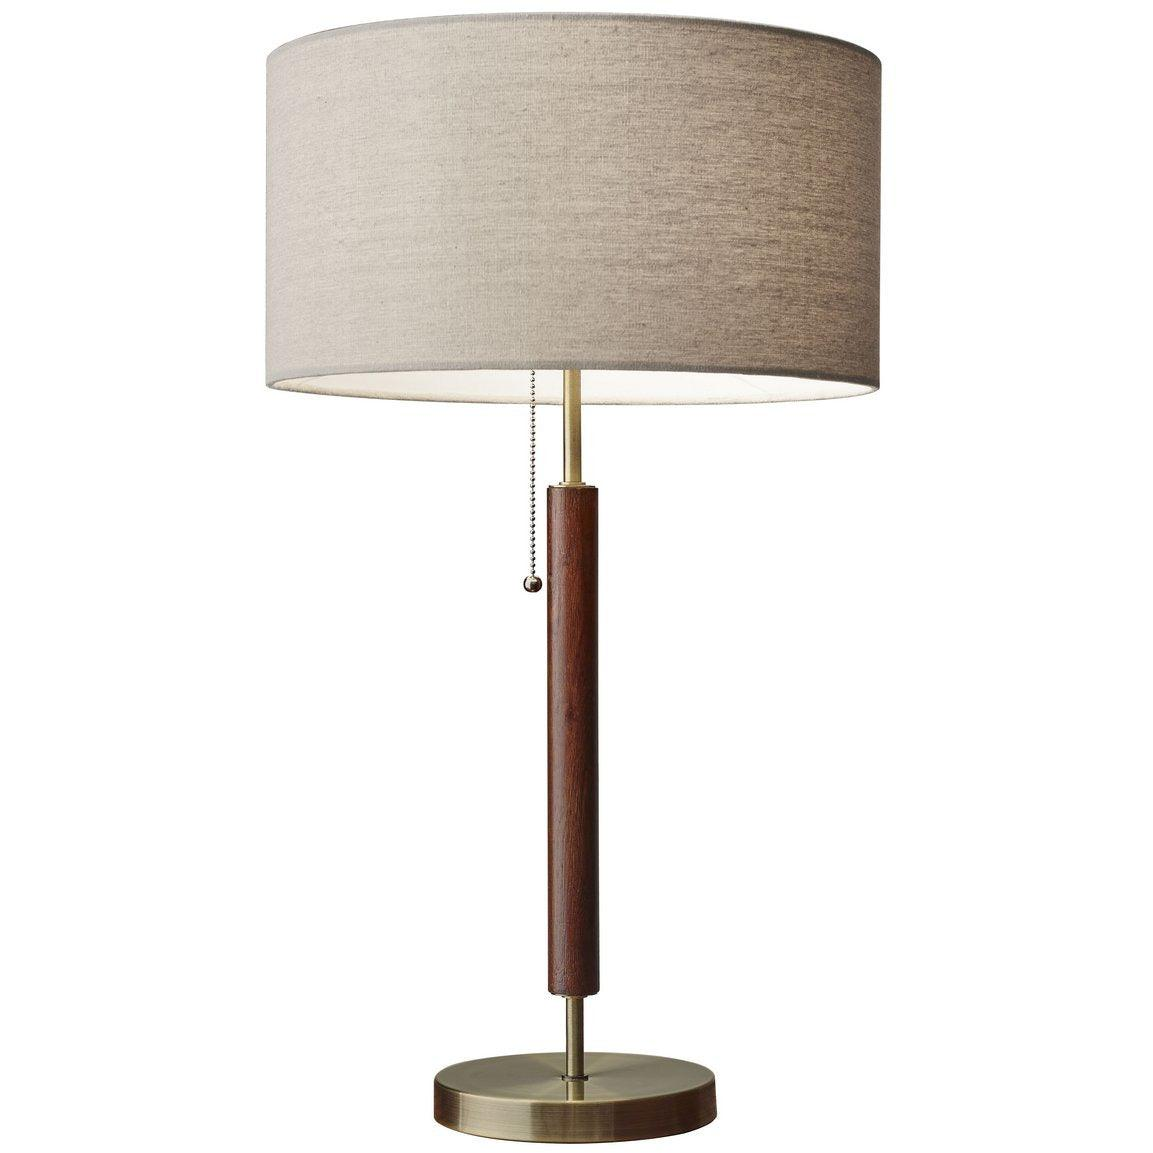 Adesso Home - 3376-15 - One Light Table Lamp - Hamilton - Walnut Eucalyptus Wood/antique brass